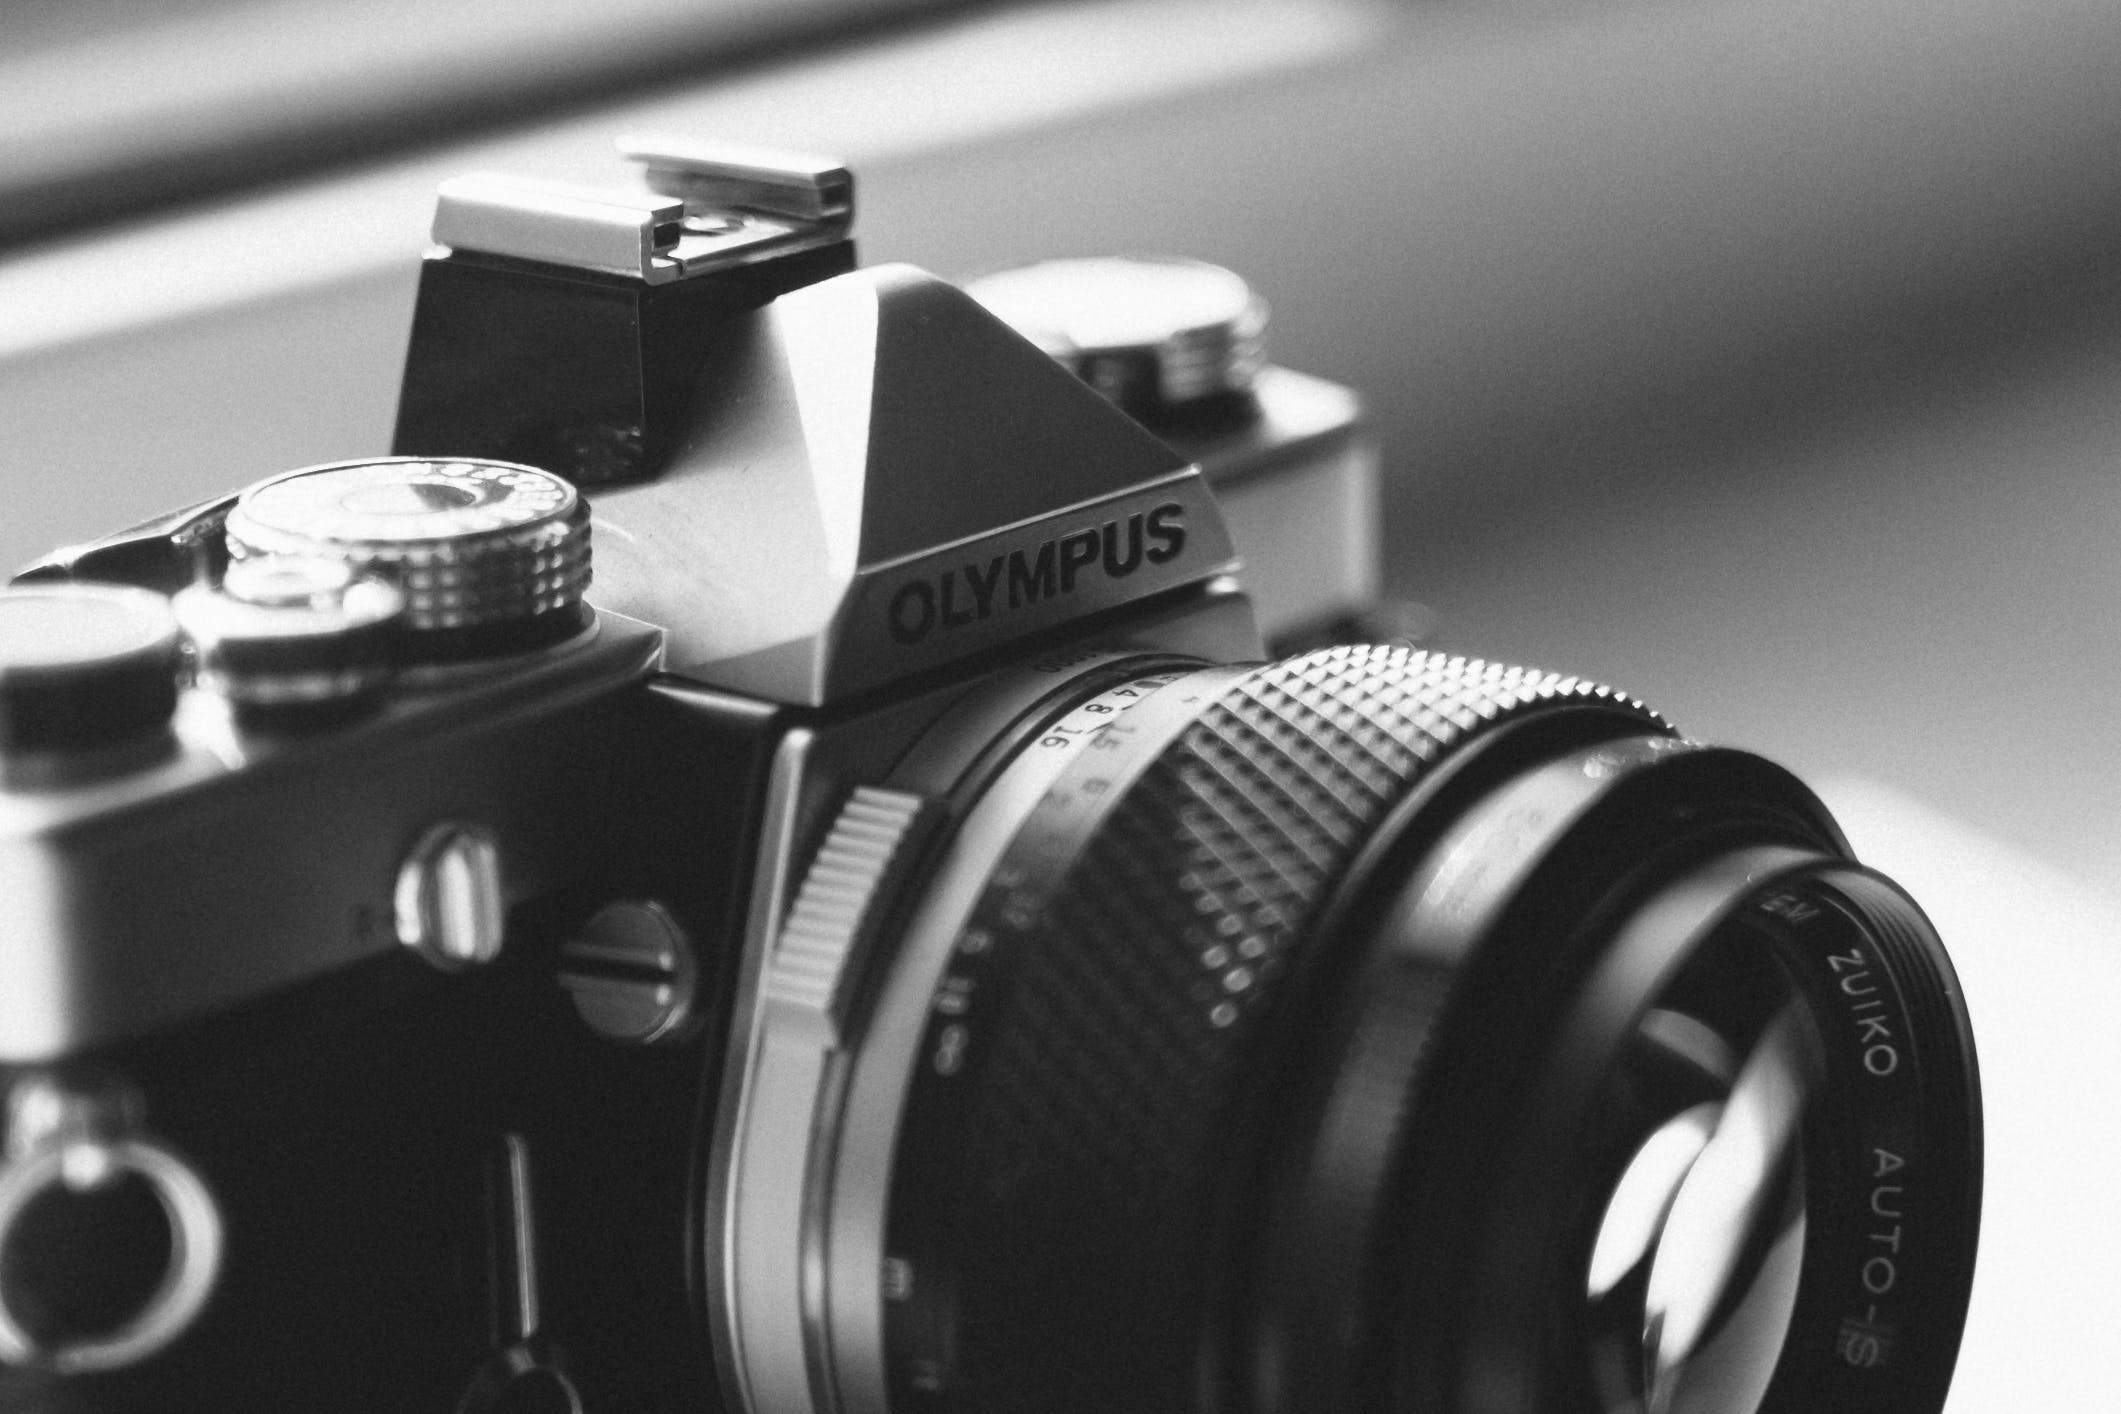 Gray Scale Photo of Olympus Dslr Camera